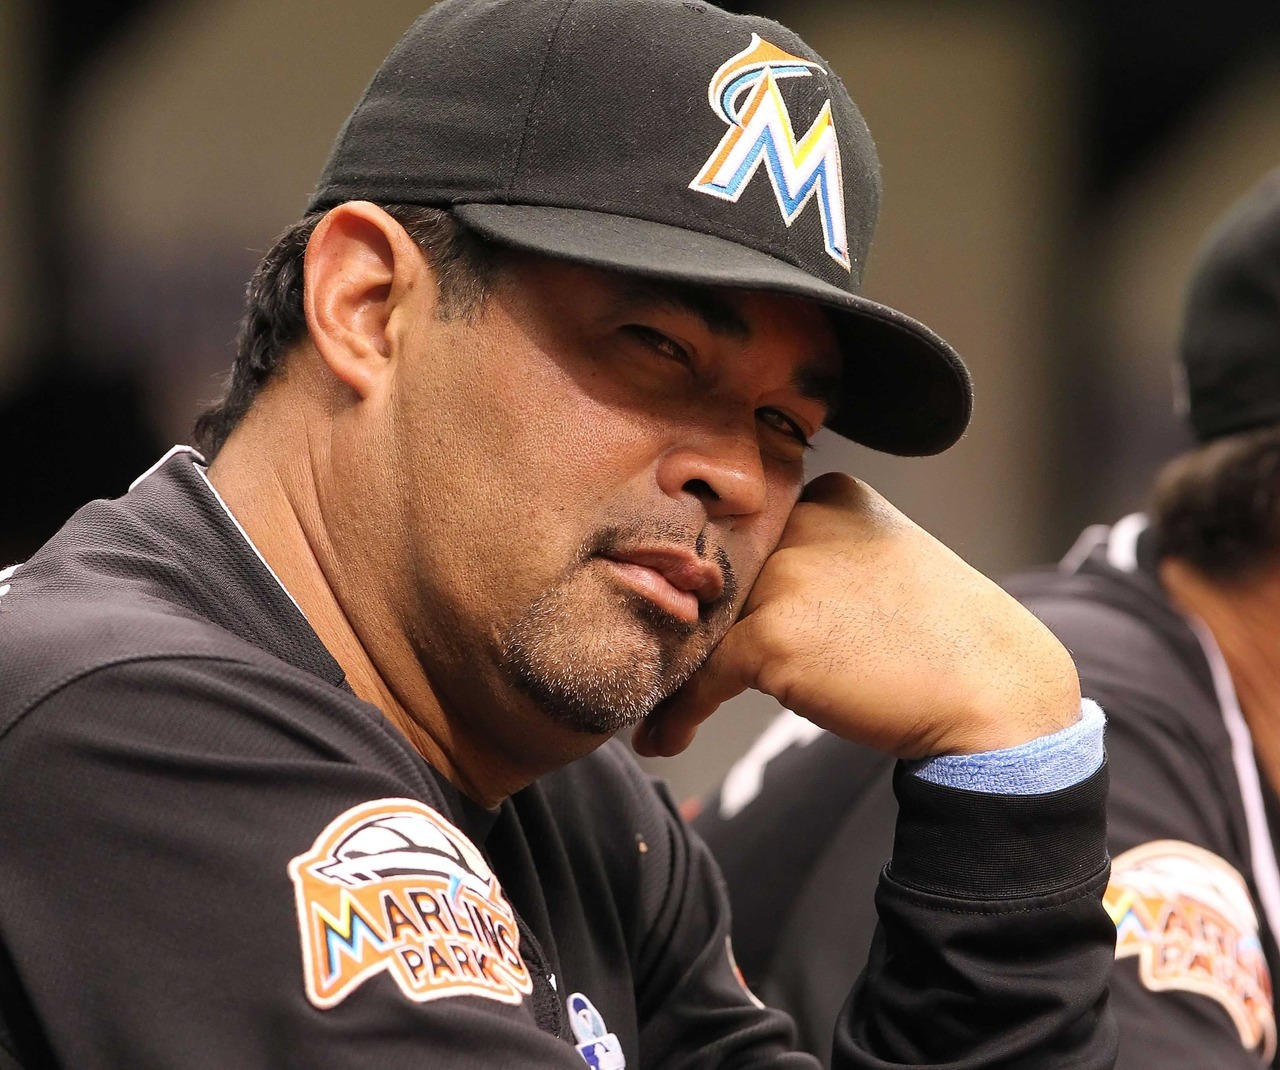 BREAKING: The Marlins have fired Ozzie Guillen after one very disappointing season.